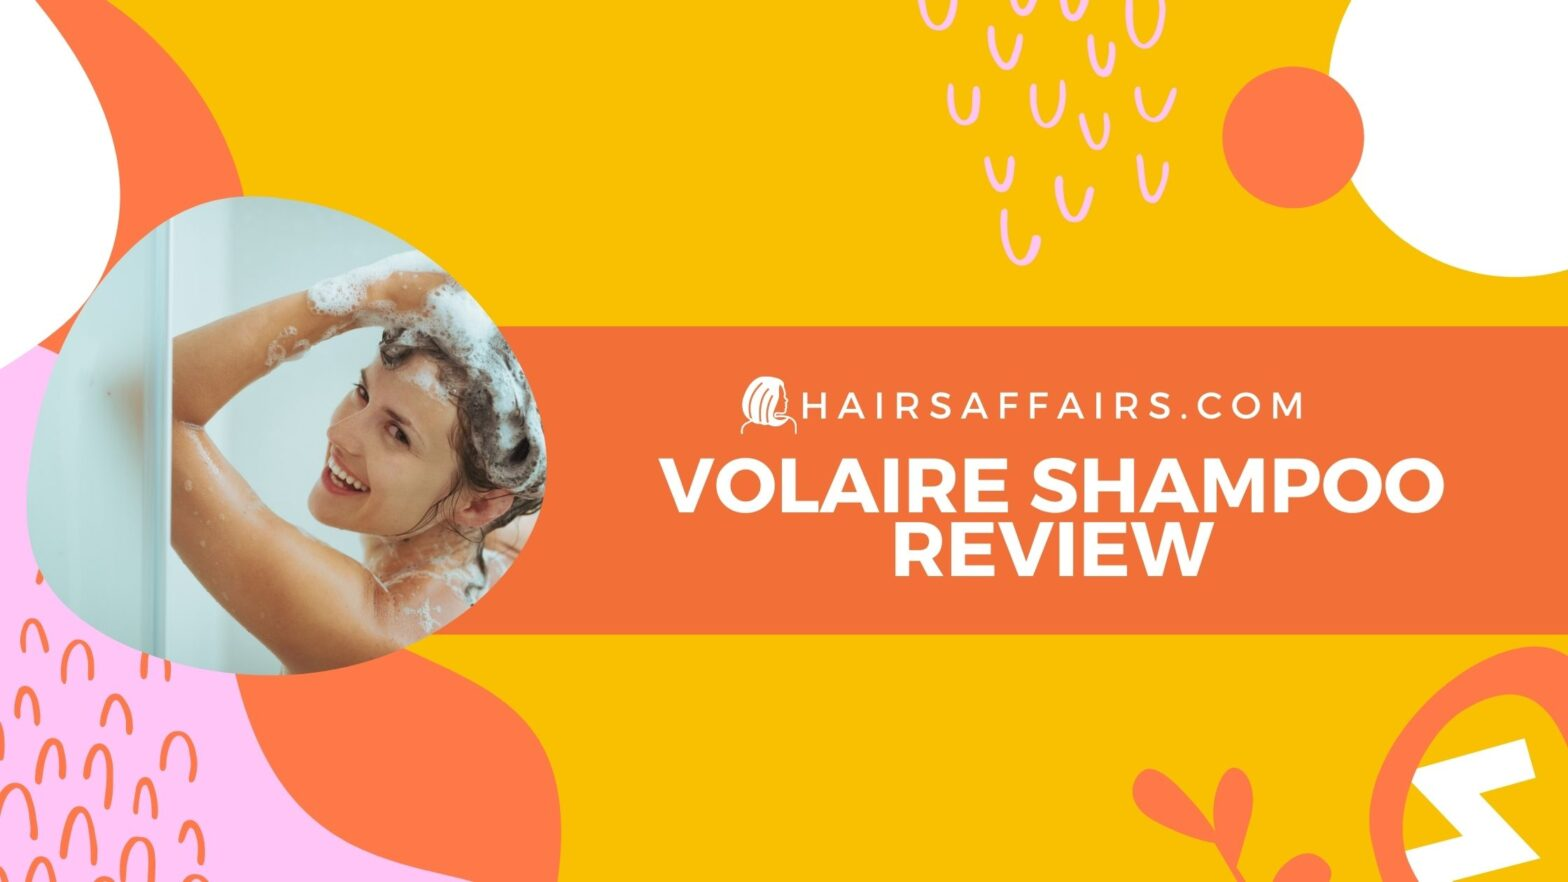 HA-Volaire-Shampoo-Review